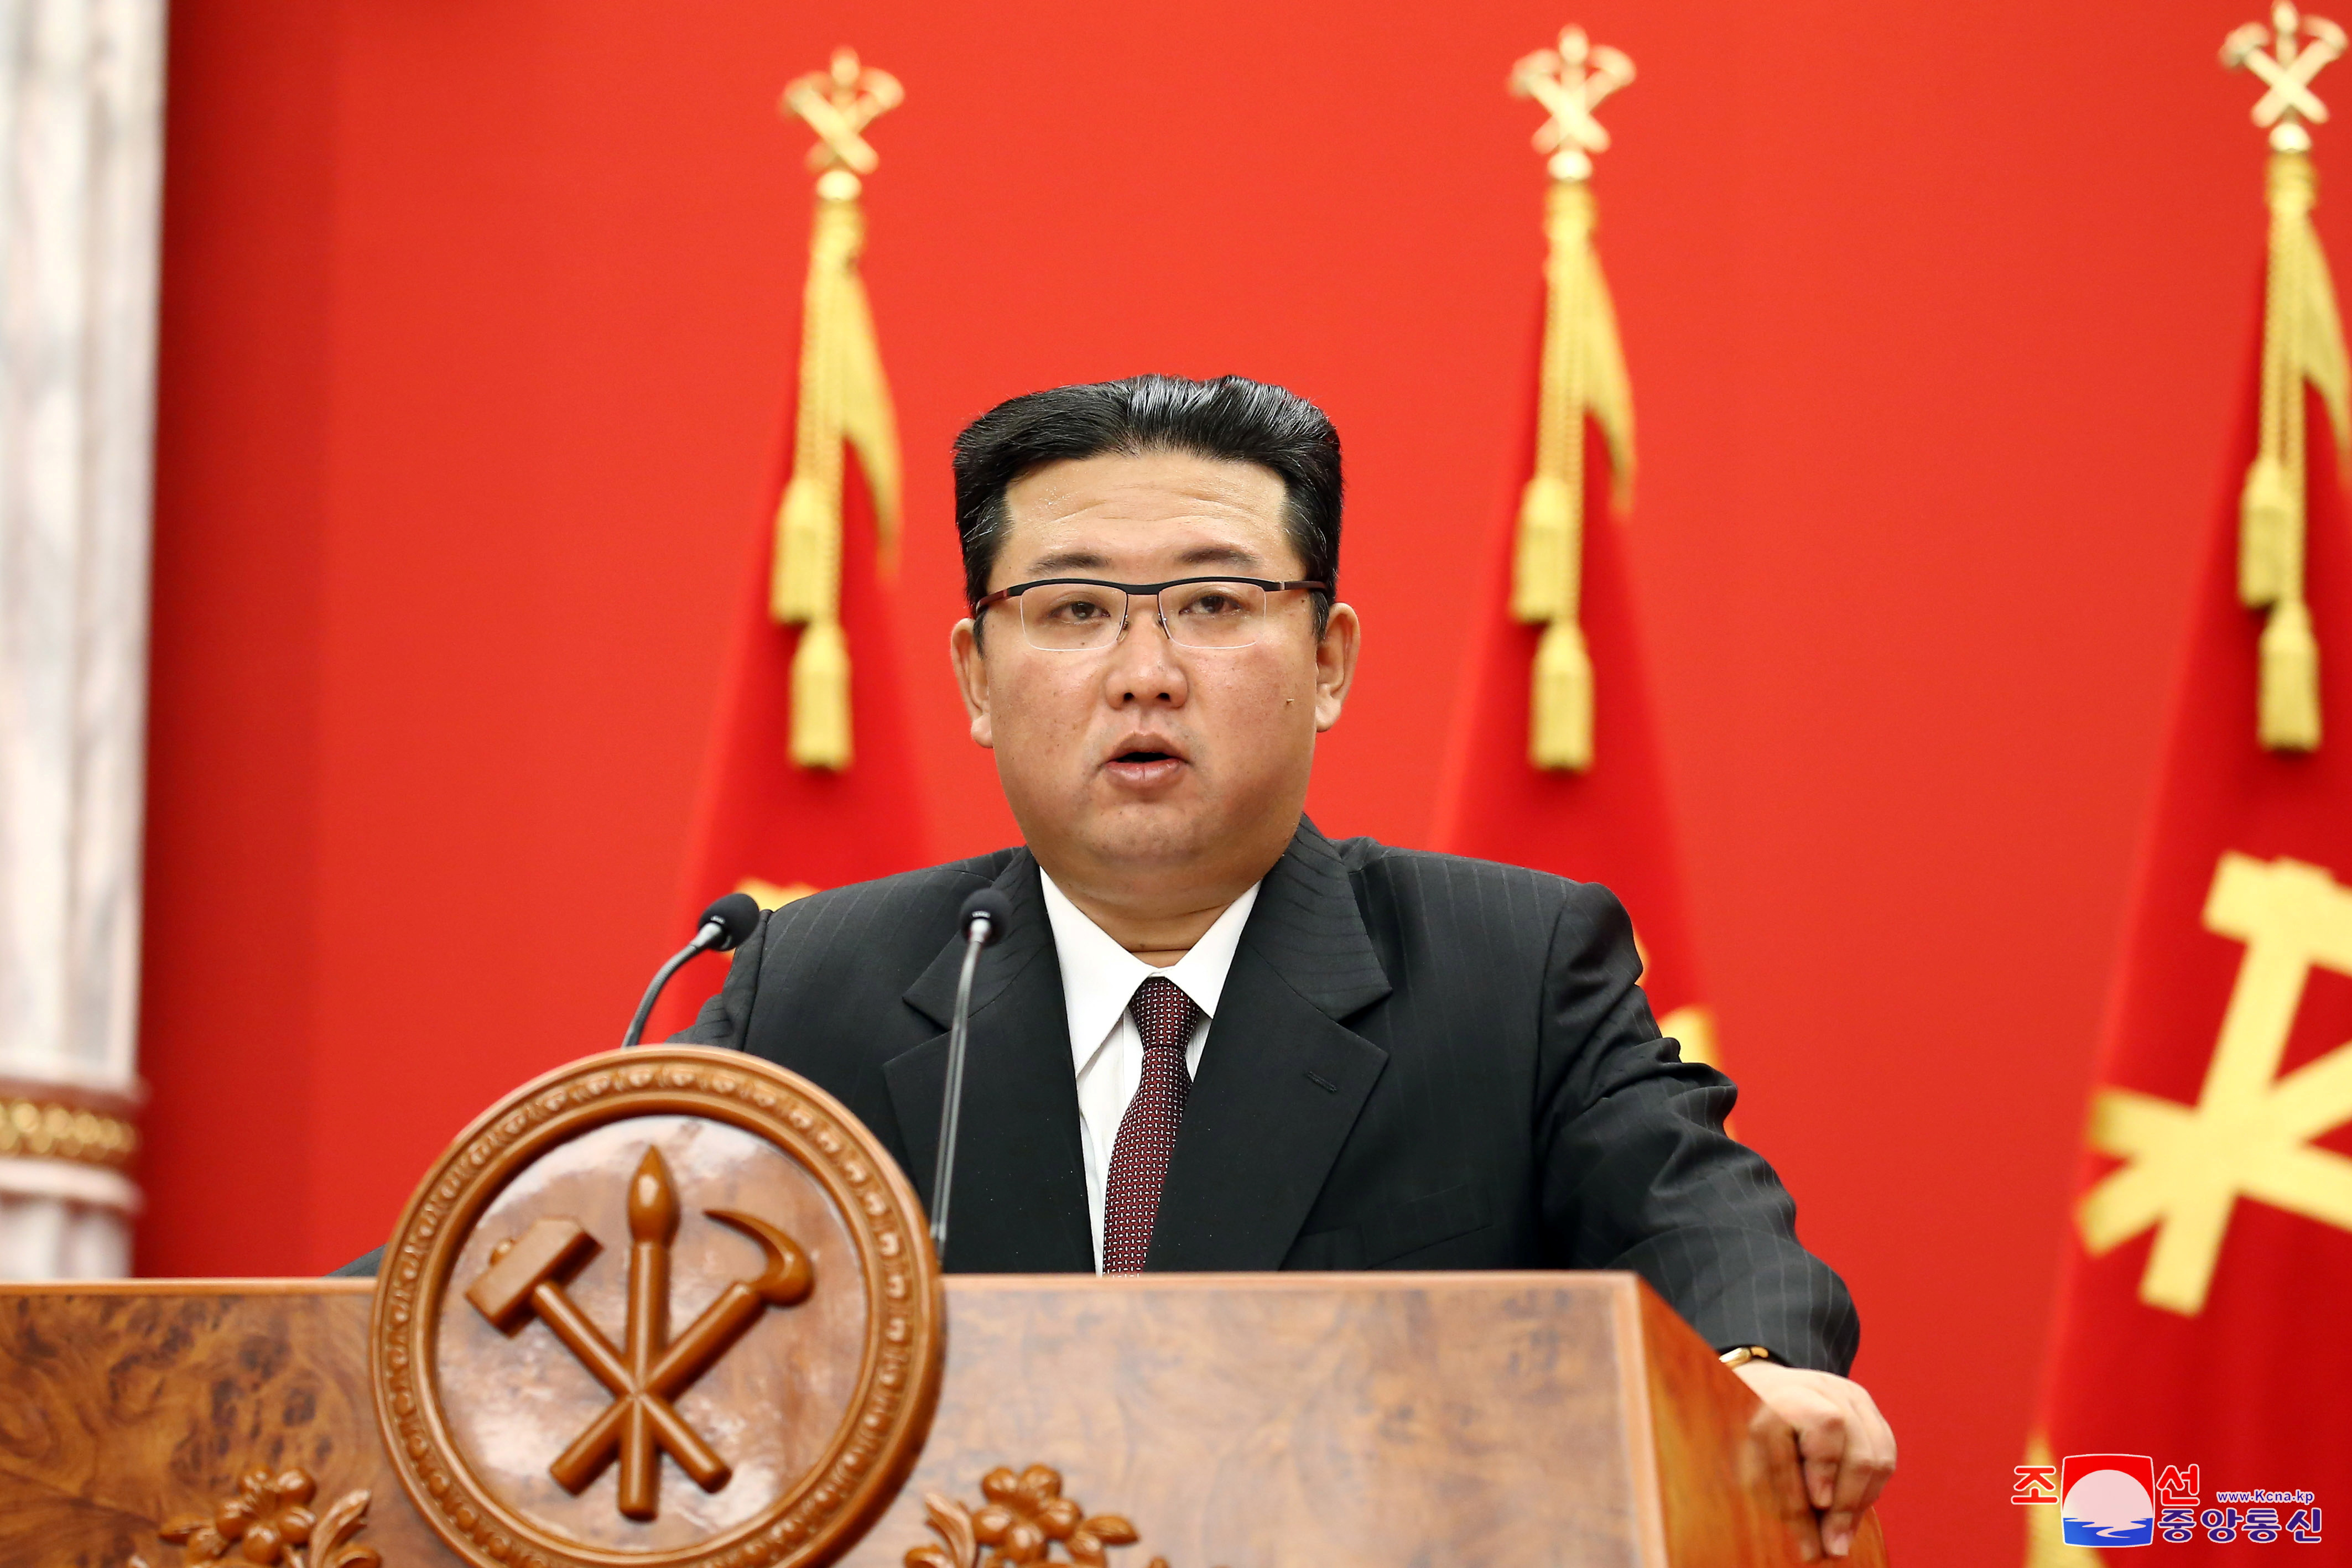 North Korean leader Kim Jong Un speaks during an event celebrating the 76th anniversary of the founding of the ruling Workers' Party of Korea (WPK) in Pyongyang, North Korea, in this undated photo released on October 11, 2021 by North Korea's Korean Central News Agency (KCNA).  KCNA/via REUTERS.